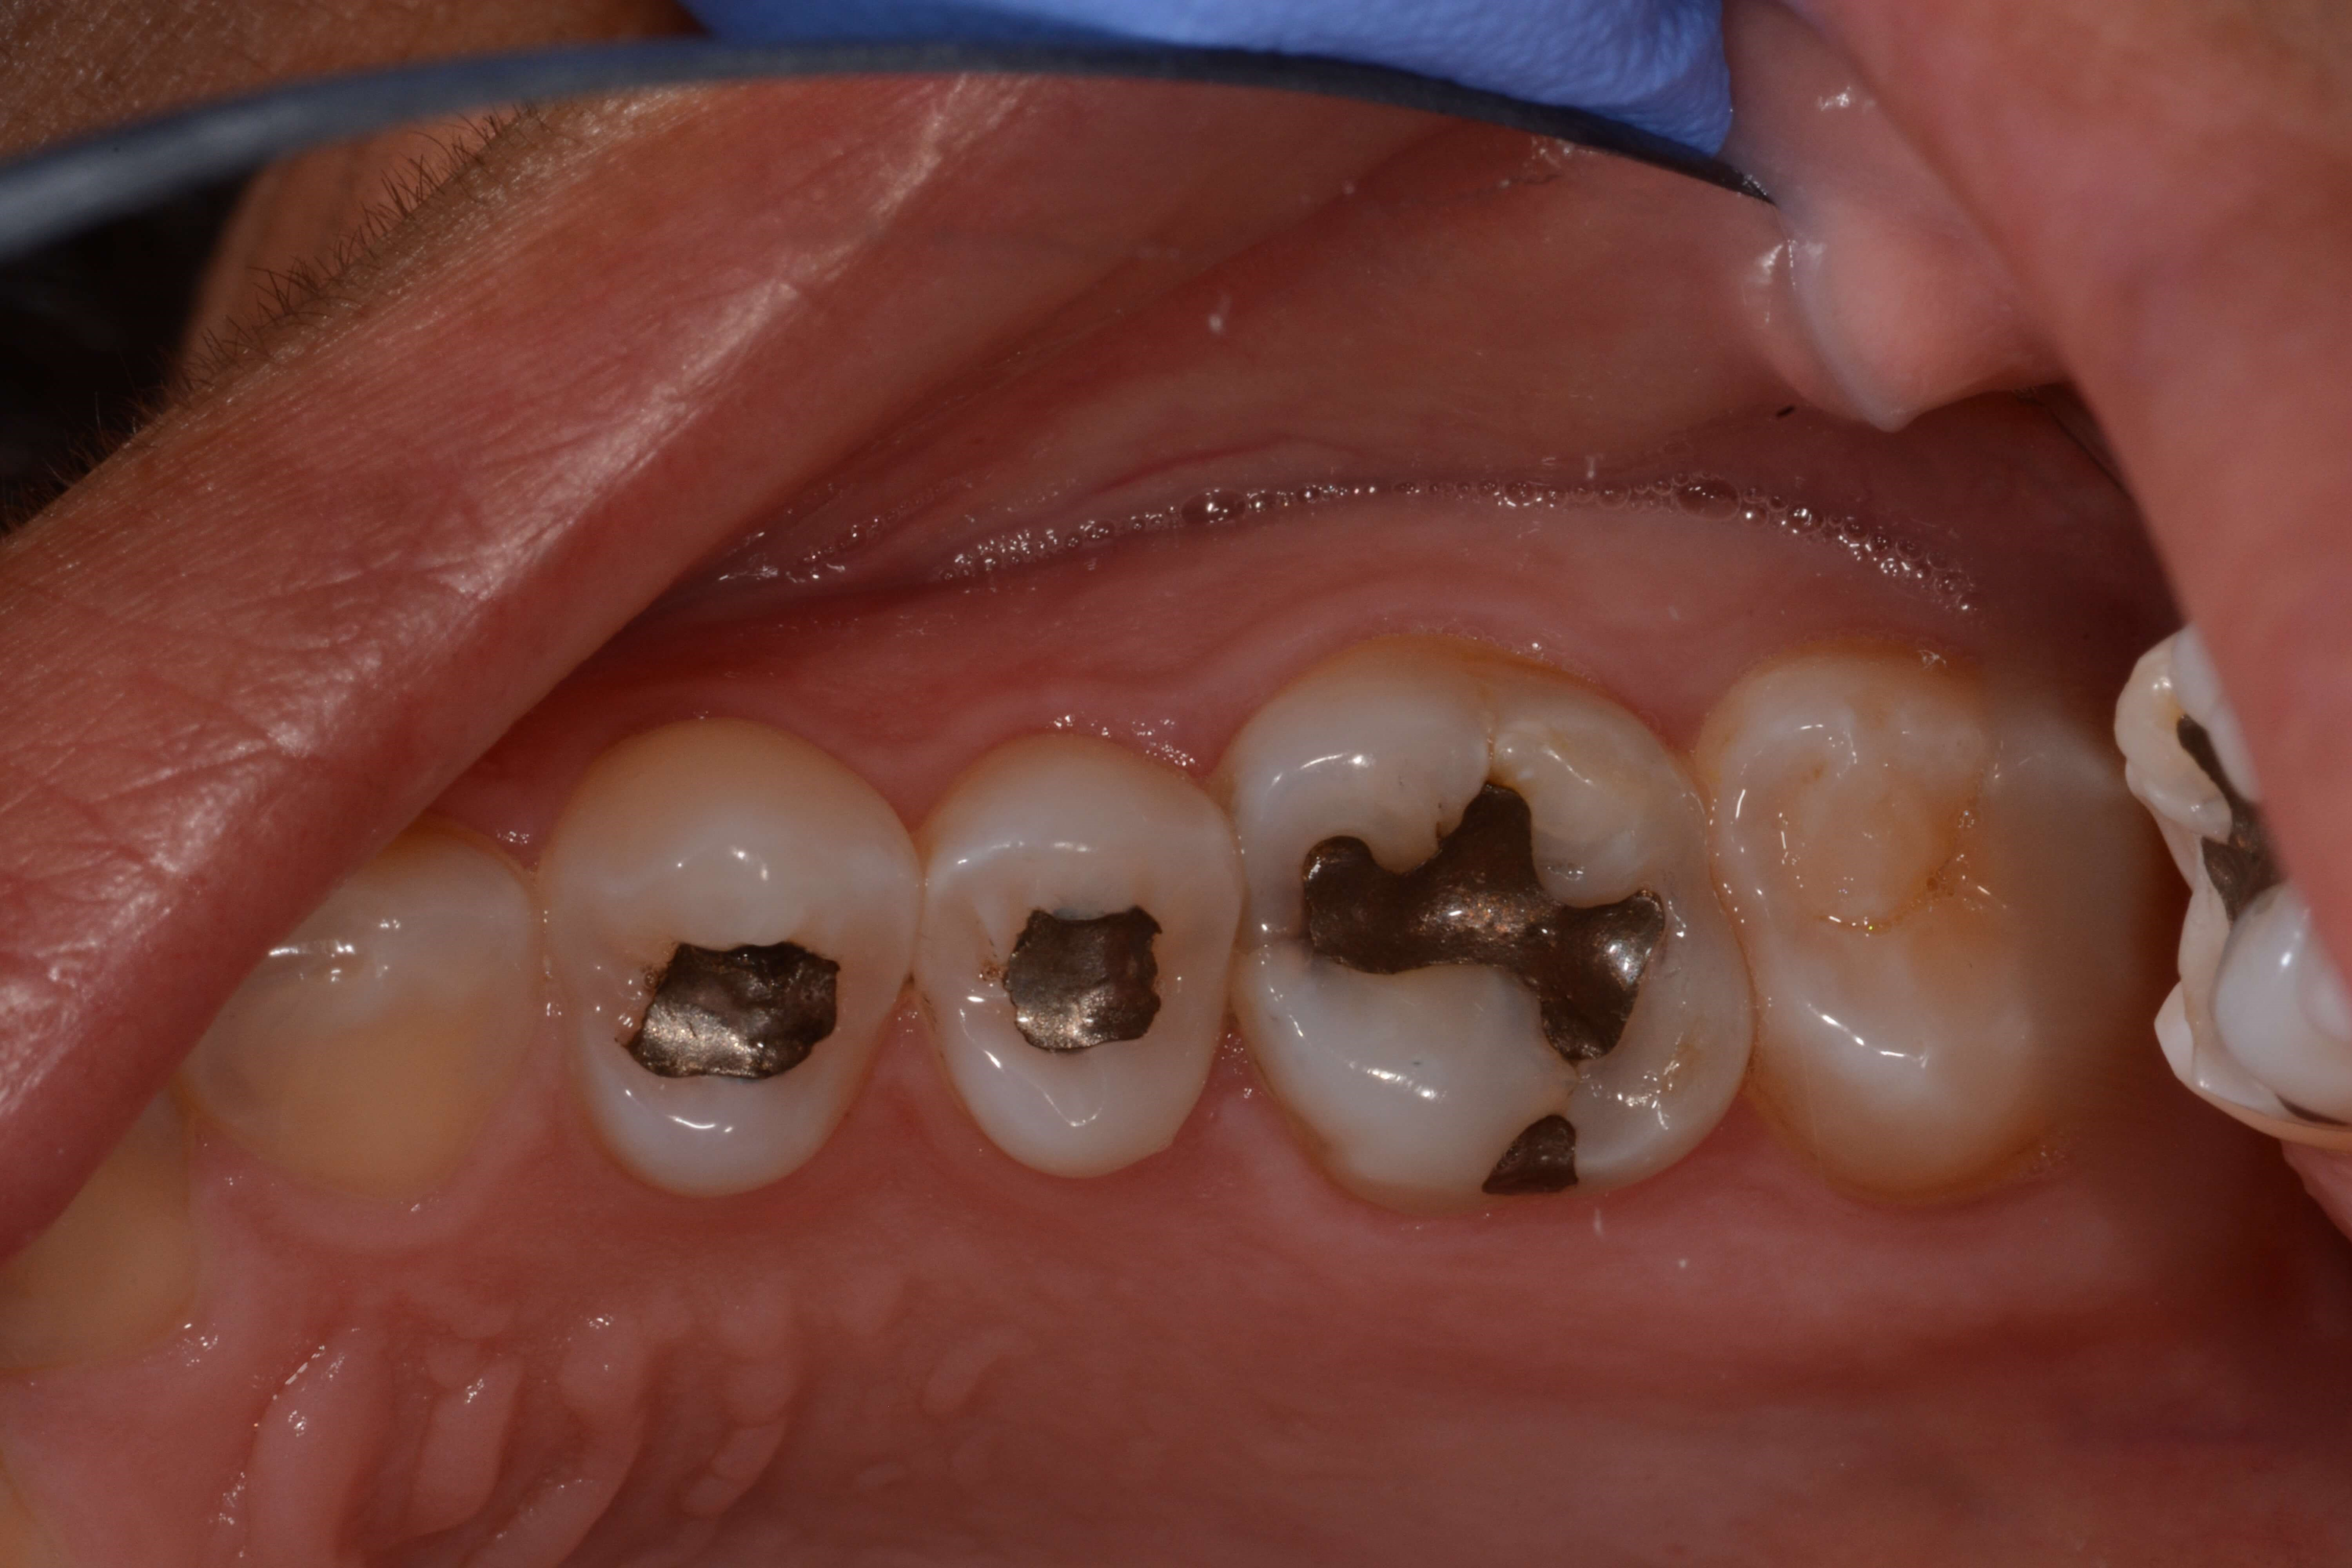 Occlusal View Before